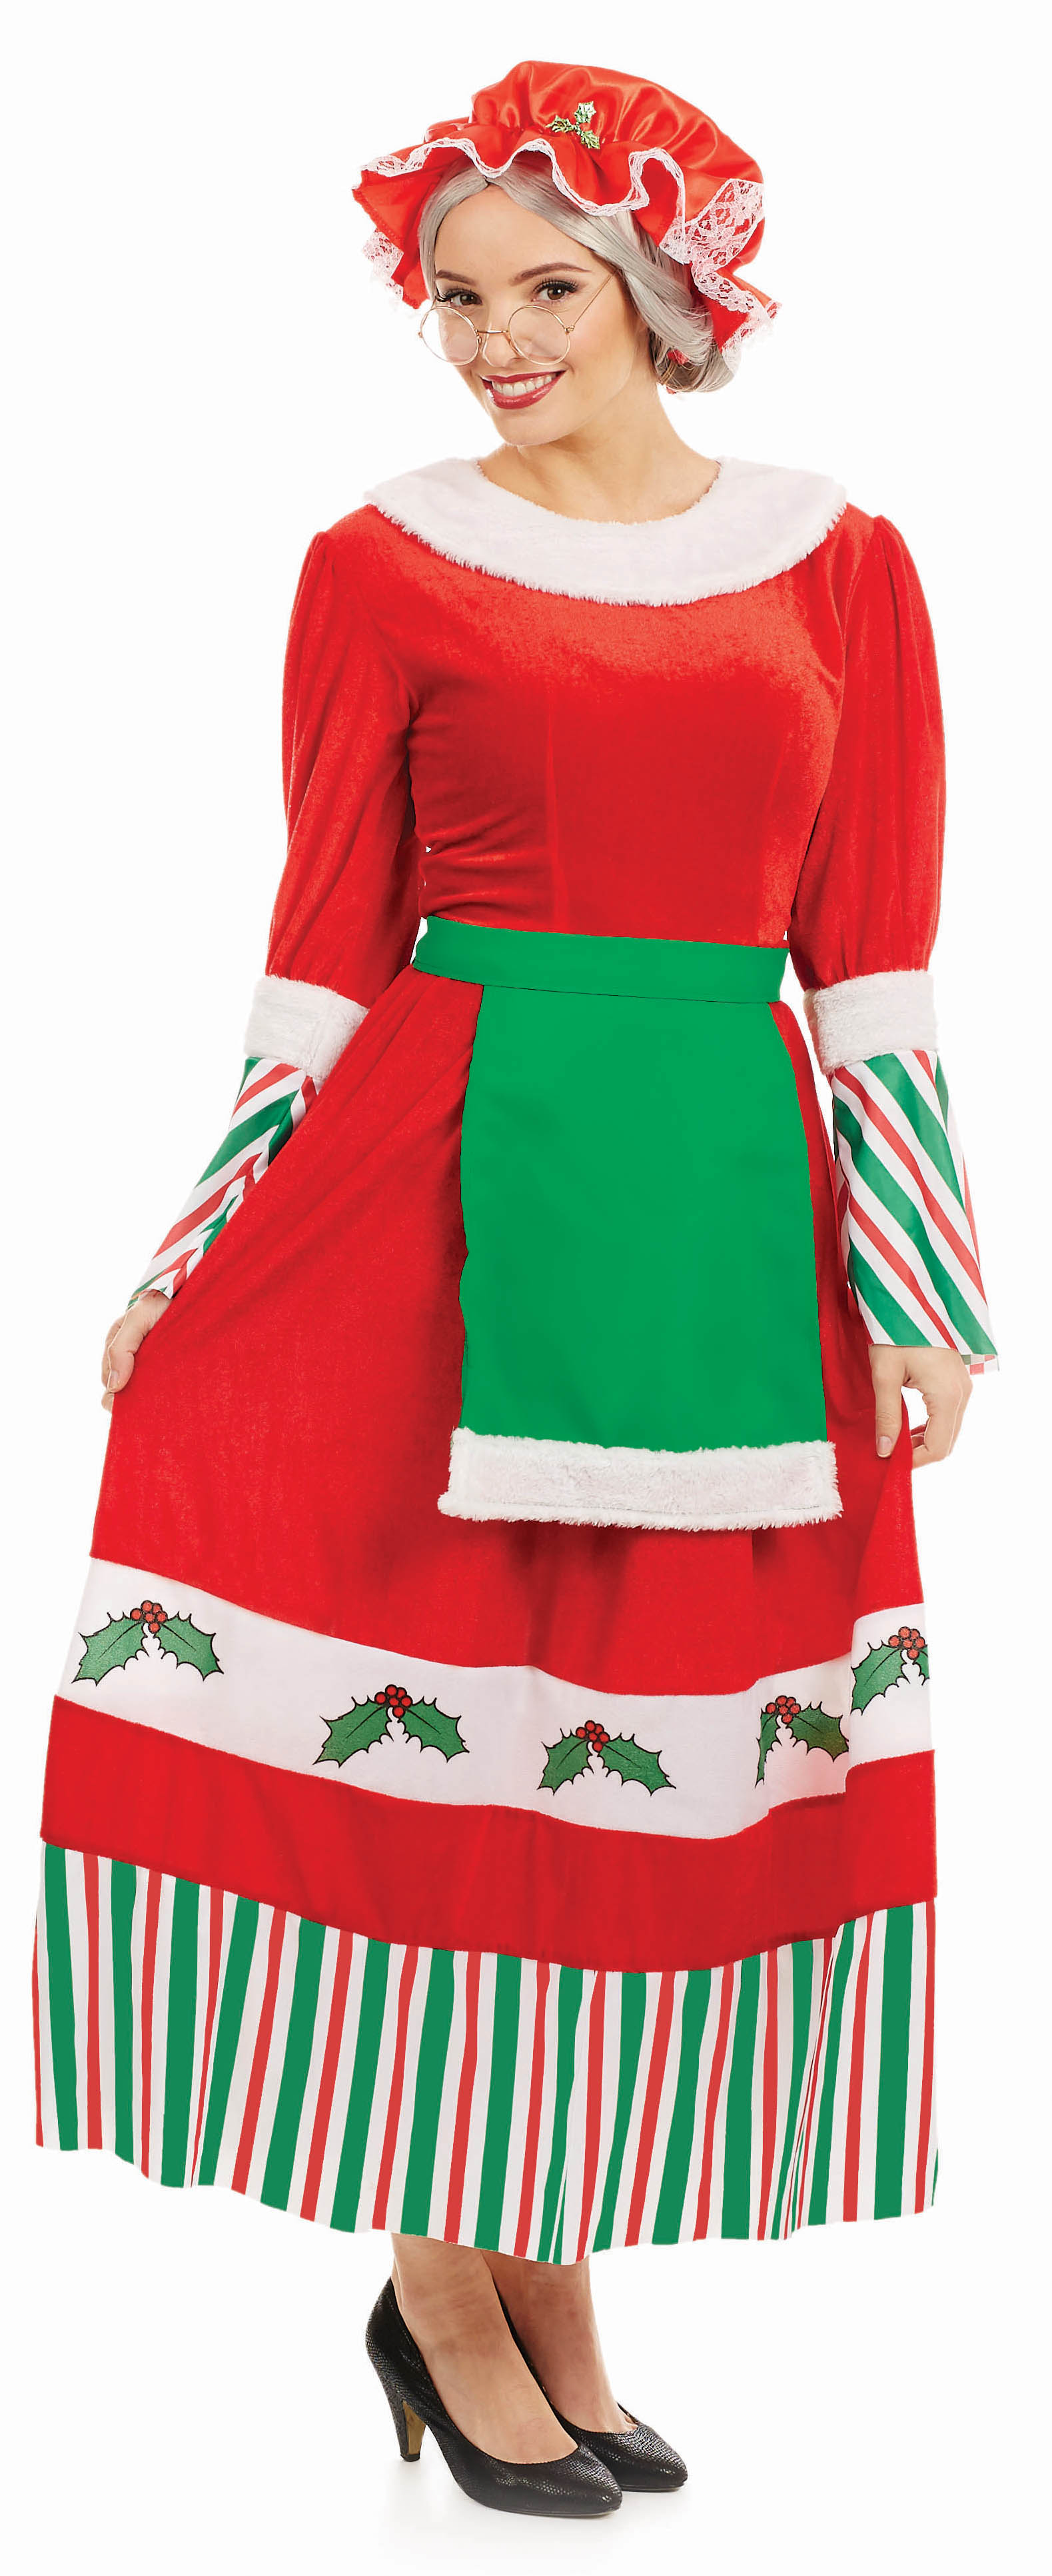 pictures of mrs claus traditional mrs claus costume all ladies costumes mega 3363